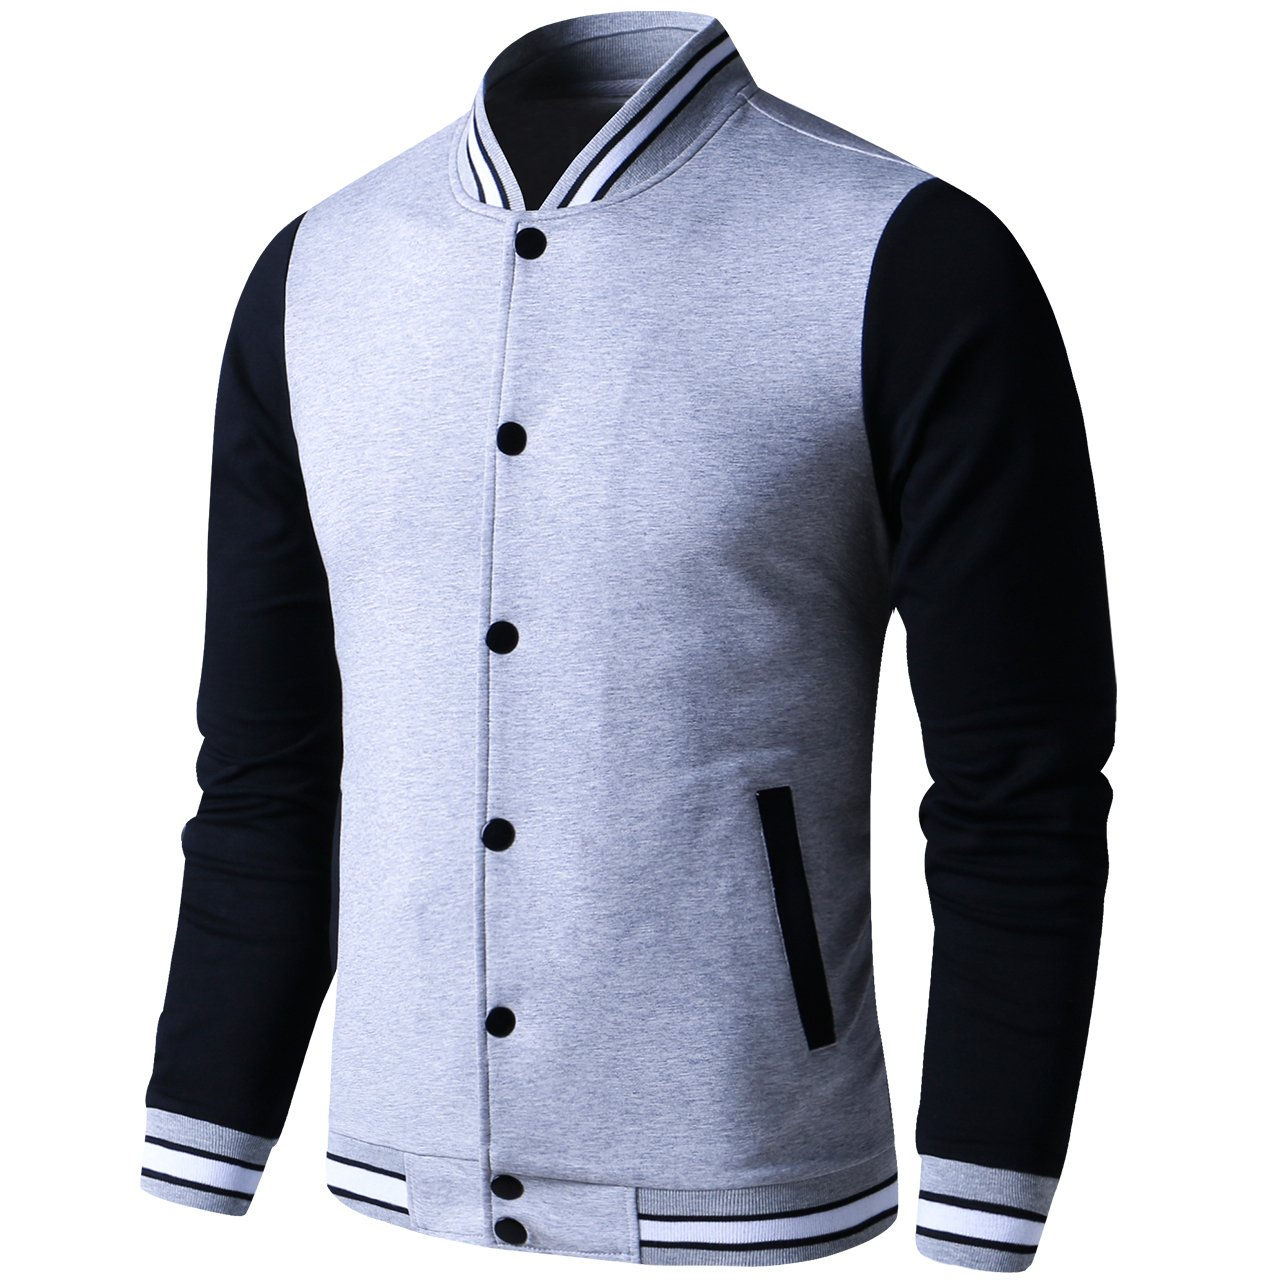 LTIFONE Mens Lightweight Varsity Jacket Button Down Baseball College Letterman Jacket(Grey,S)